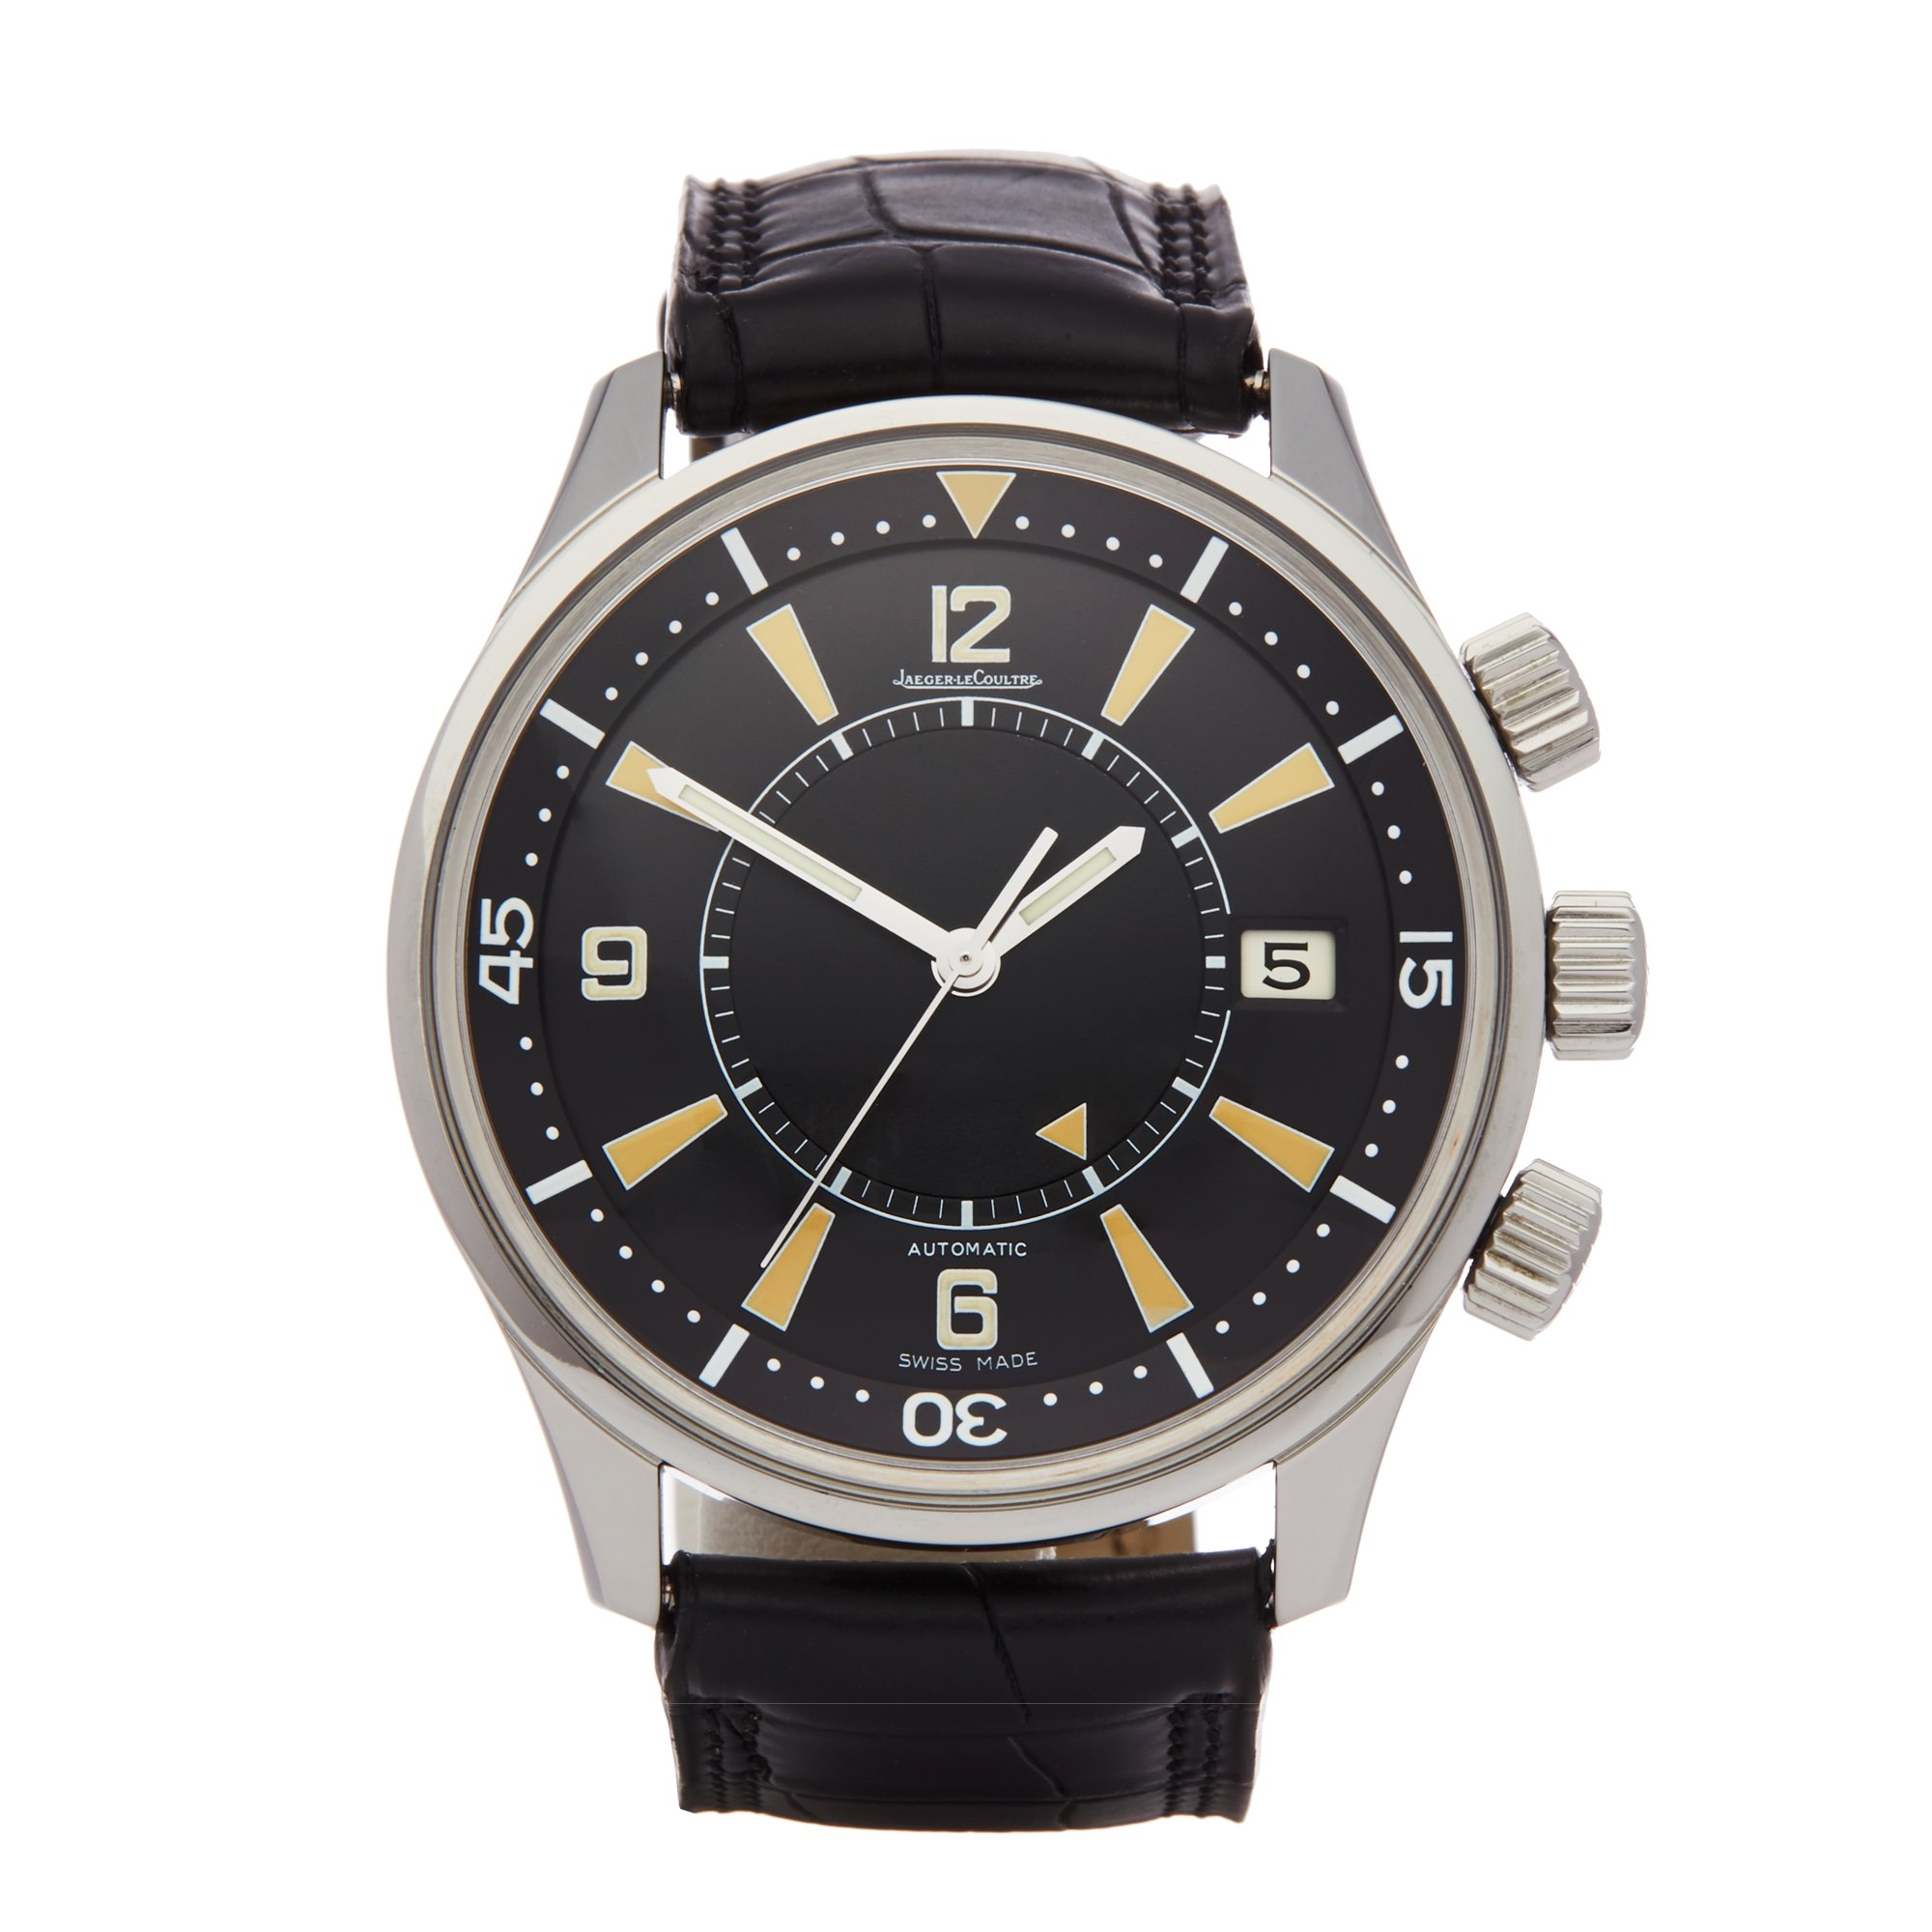 Jaeger-LeCoultre Memovox Polaris Limited Edition of 768 Pieces Stainless Steel - Q2008470 or 190.8.96 Roestvrij Staal Q2008470 or 190.8.96